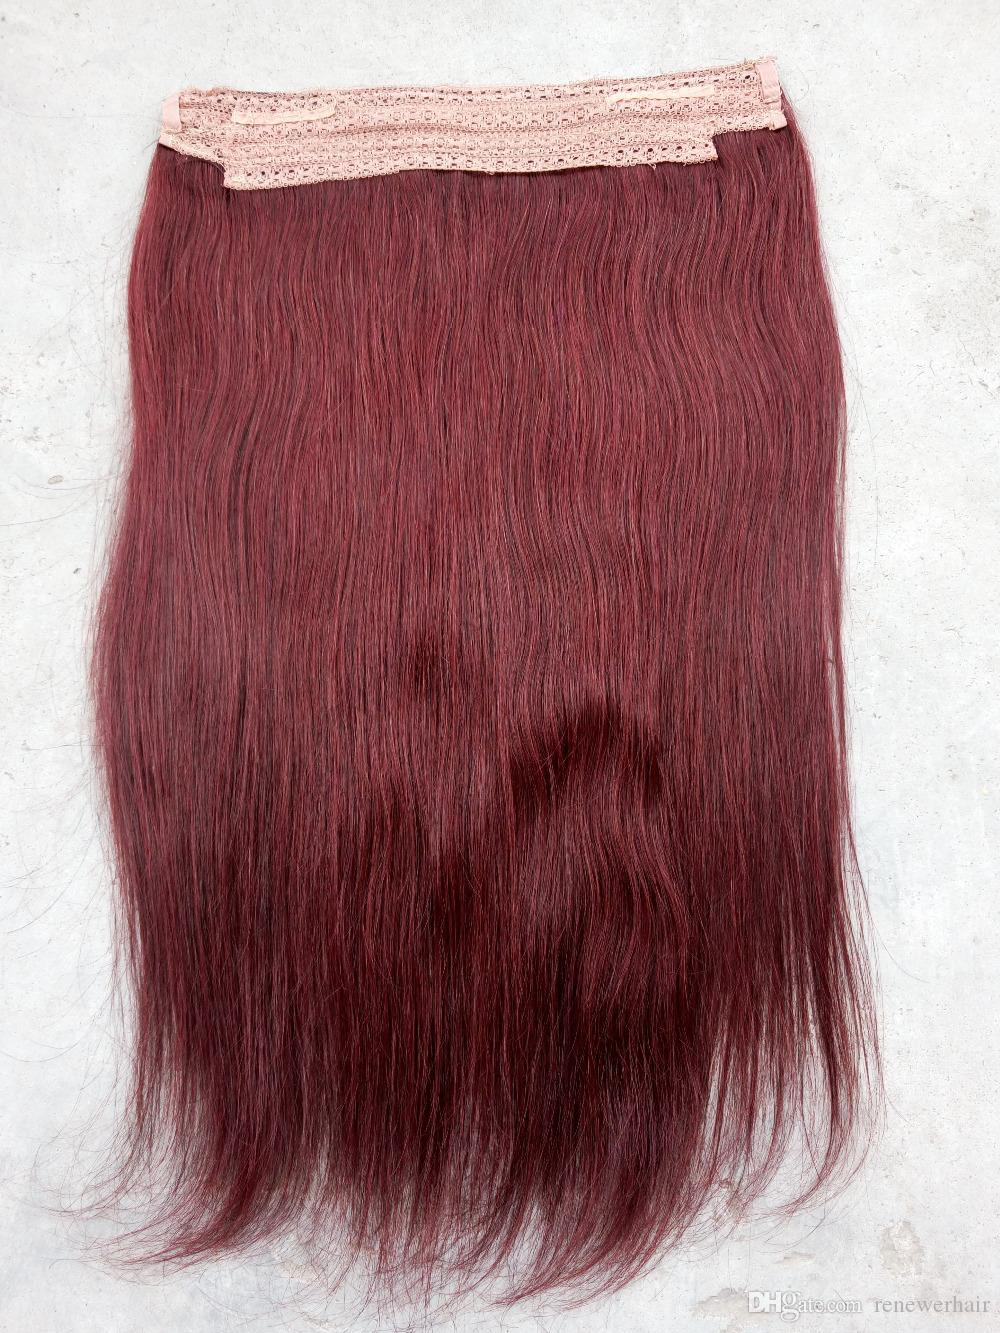 Halo Flip In Hair Extensions Brazilian Hair Extensions No Clips No